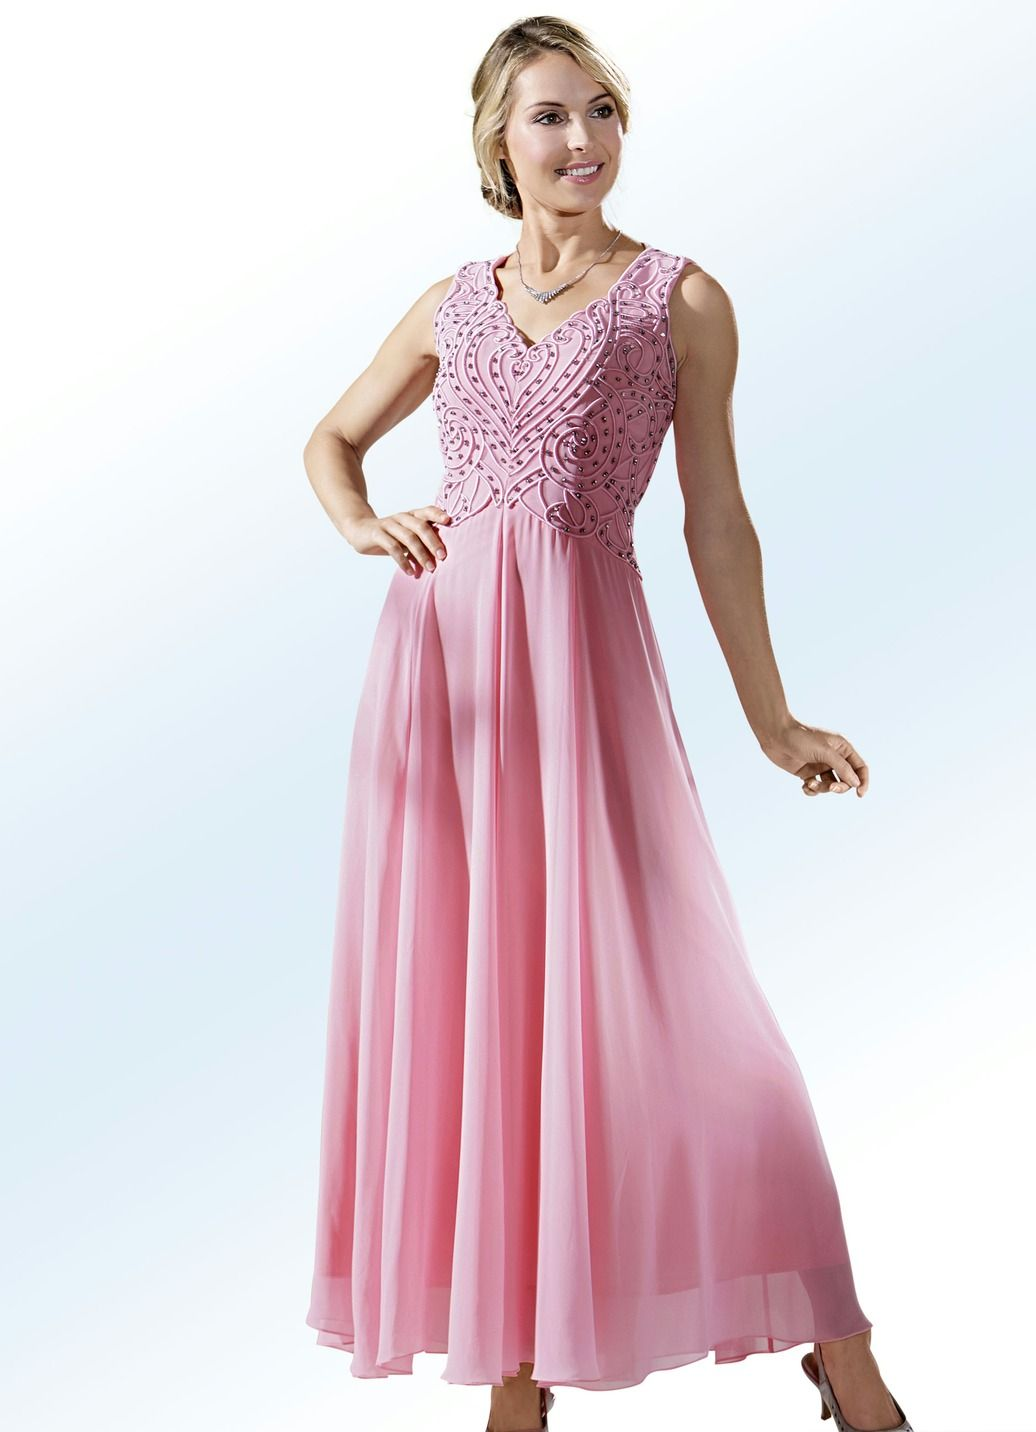 https://www.bader.de/shop/product/party-kleid-30252-021